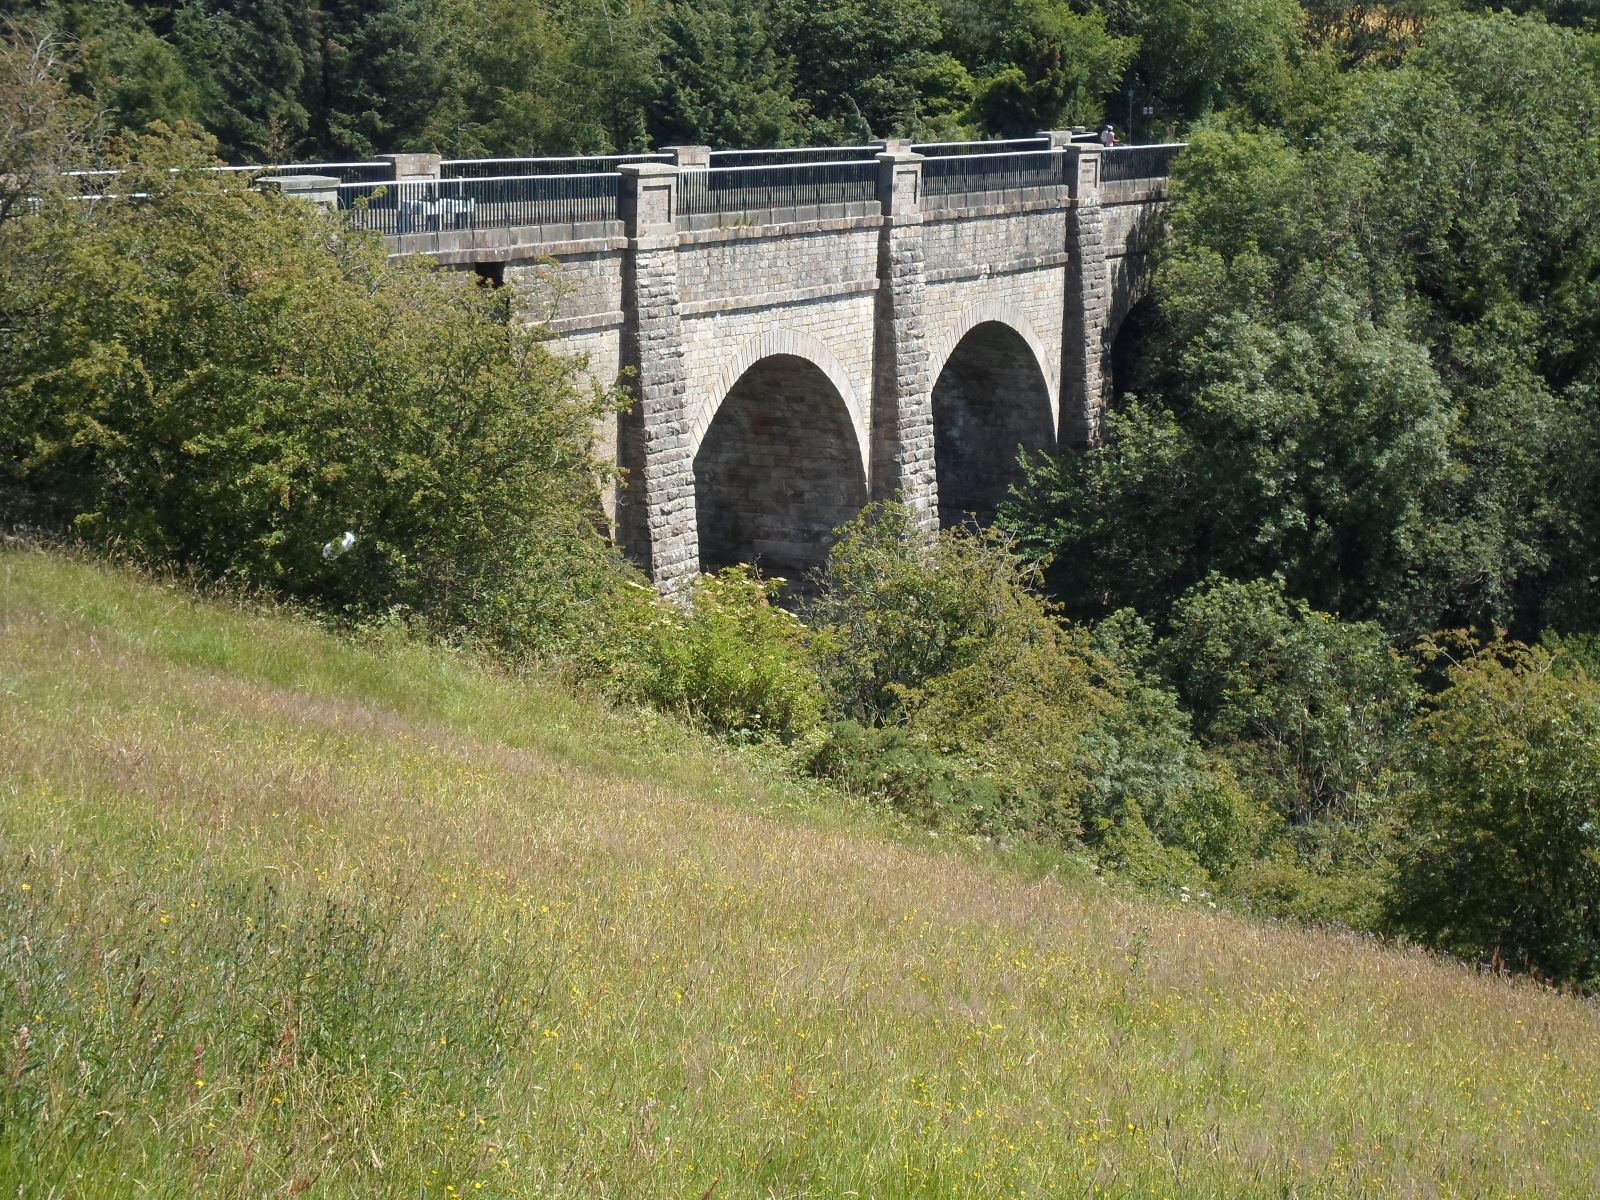 The aqueduct which carries the Union Canal over the River Almond near Ratho